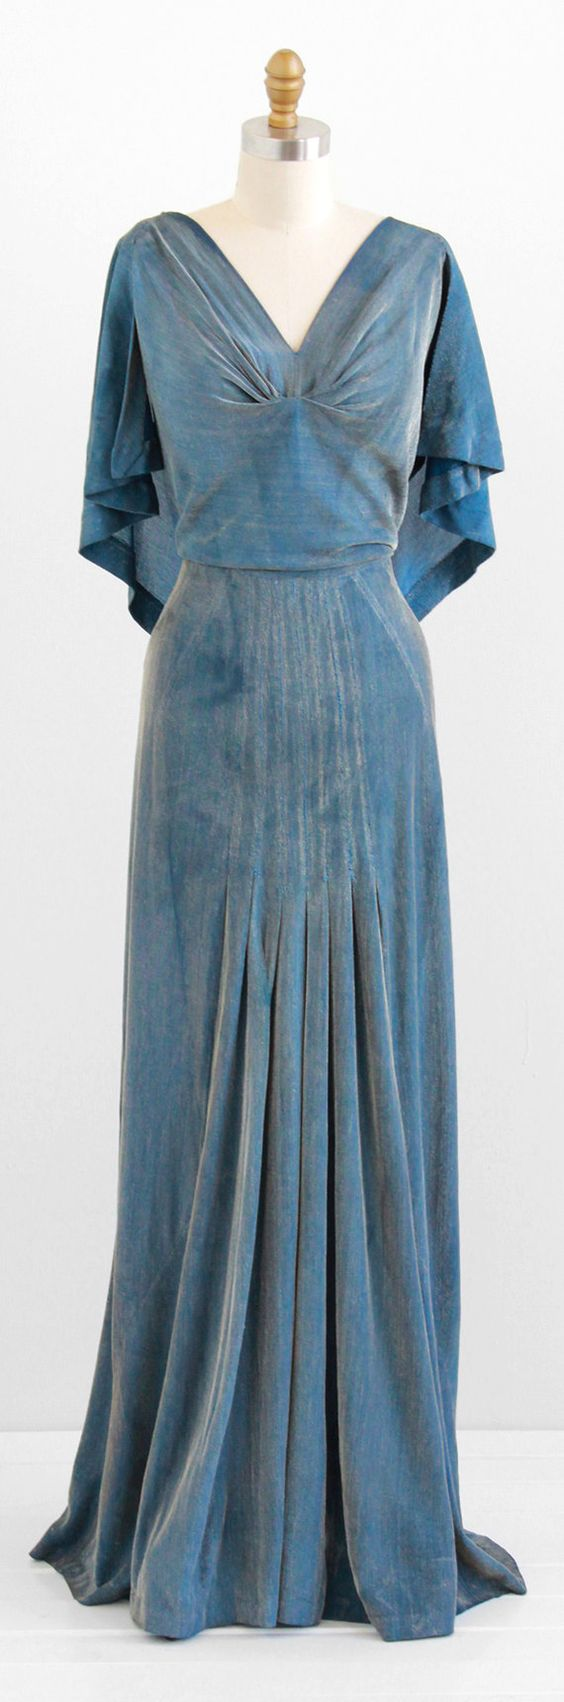 1930s, Evening gowns and Art deco fashion on Pinterest